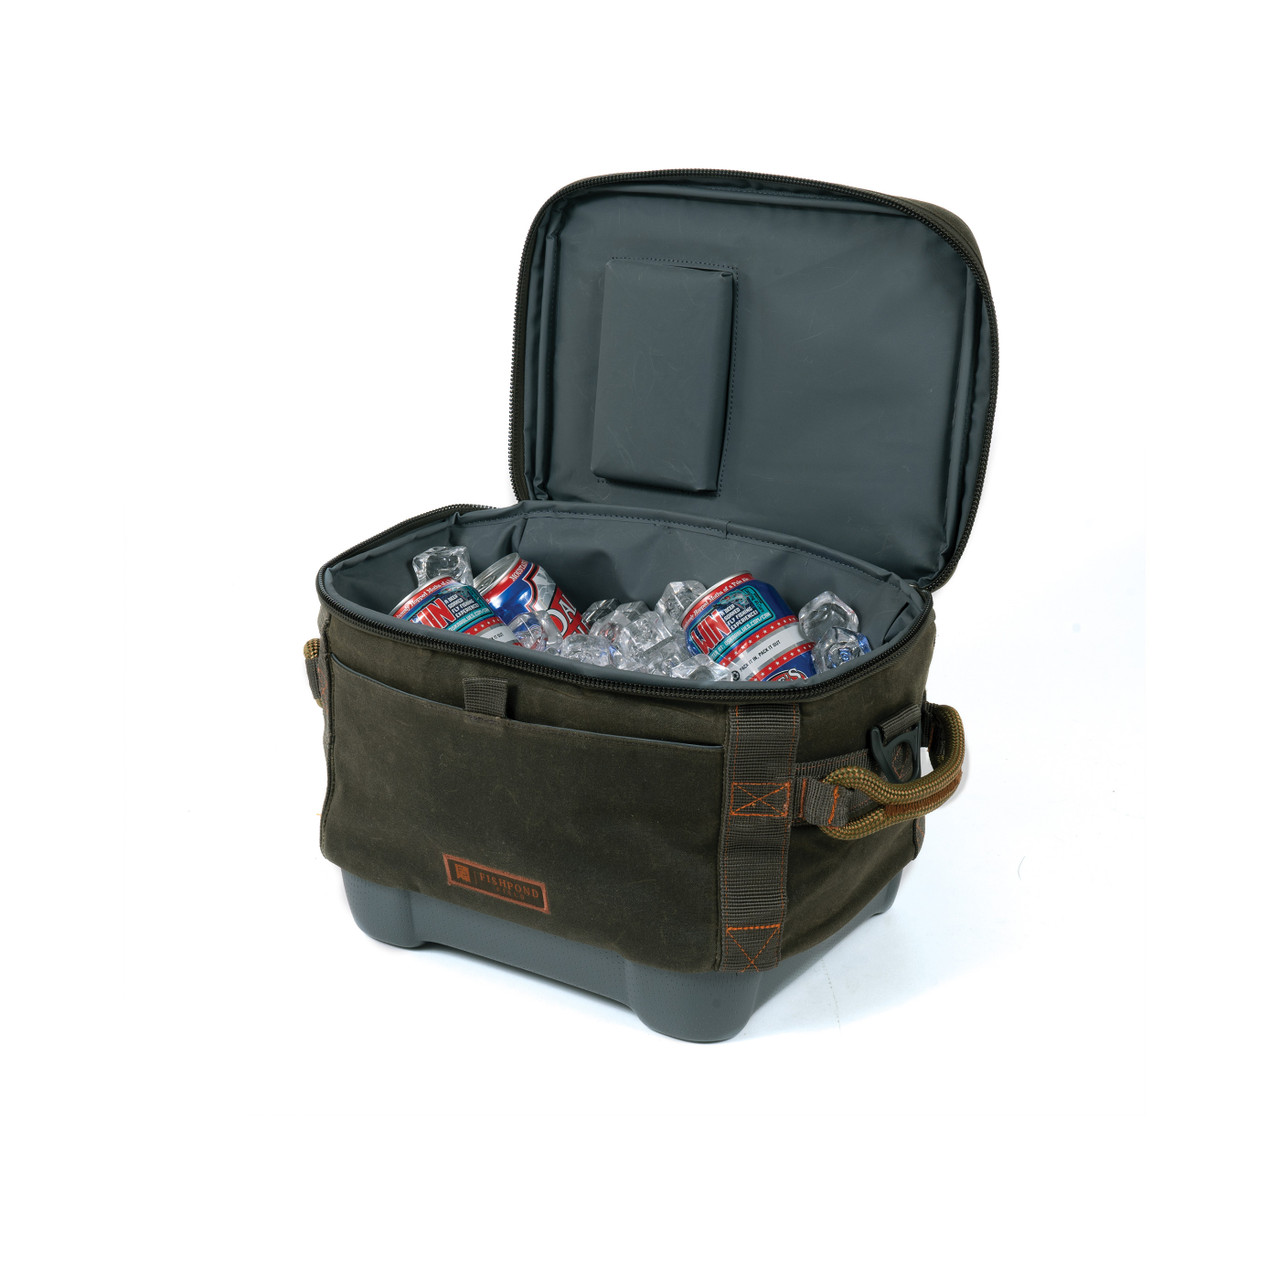 Fishpond Blizzard Cooler, Peat Moss (FISHPOND-BC-PM)